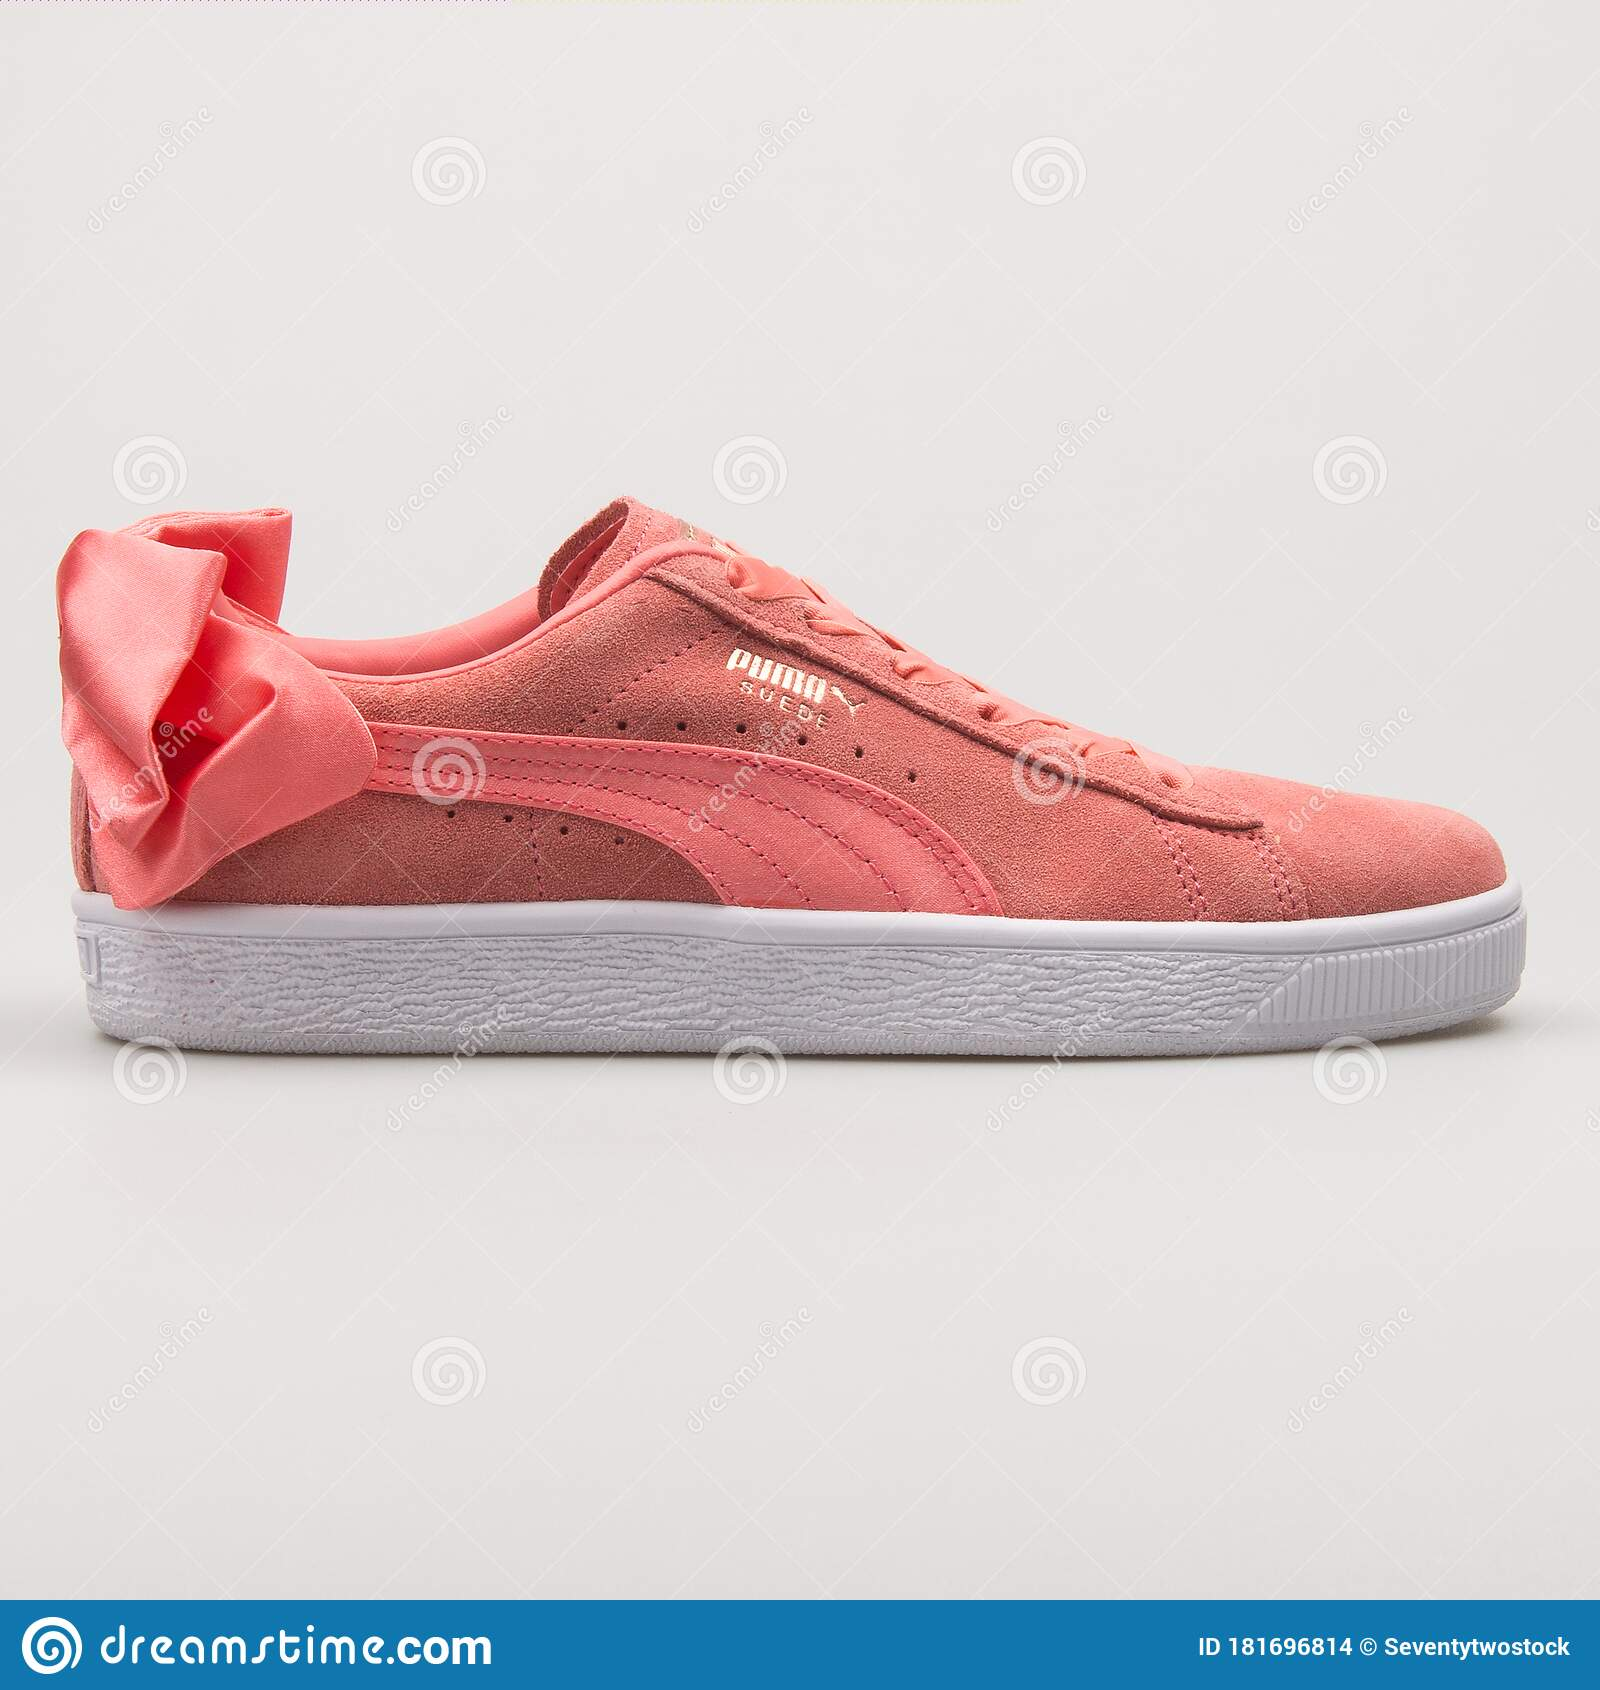 Puma Suede Bow AC Pink Sneaker